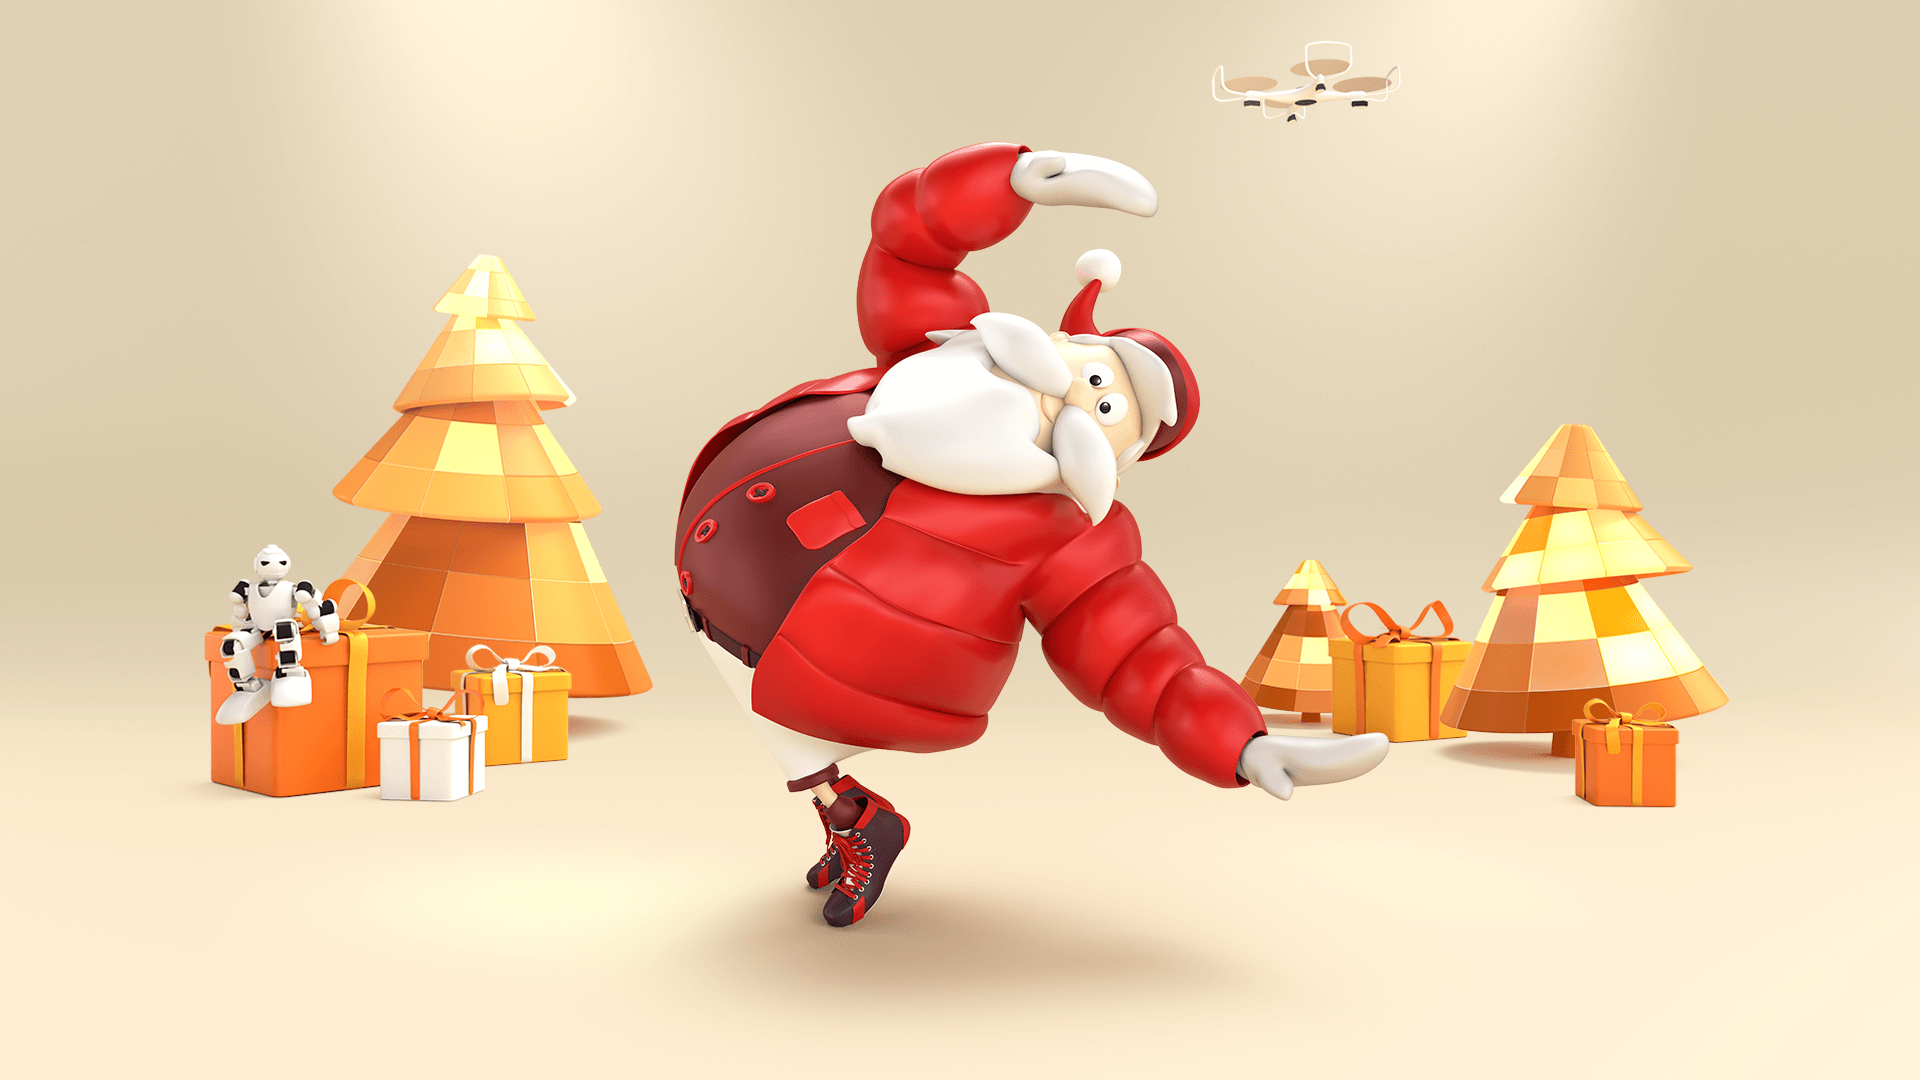 3d character toon of a Santa Claus